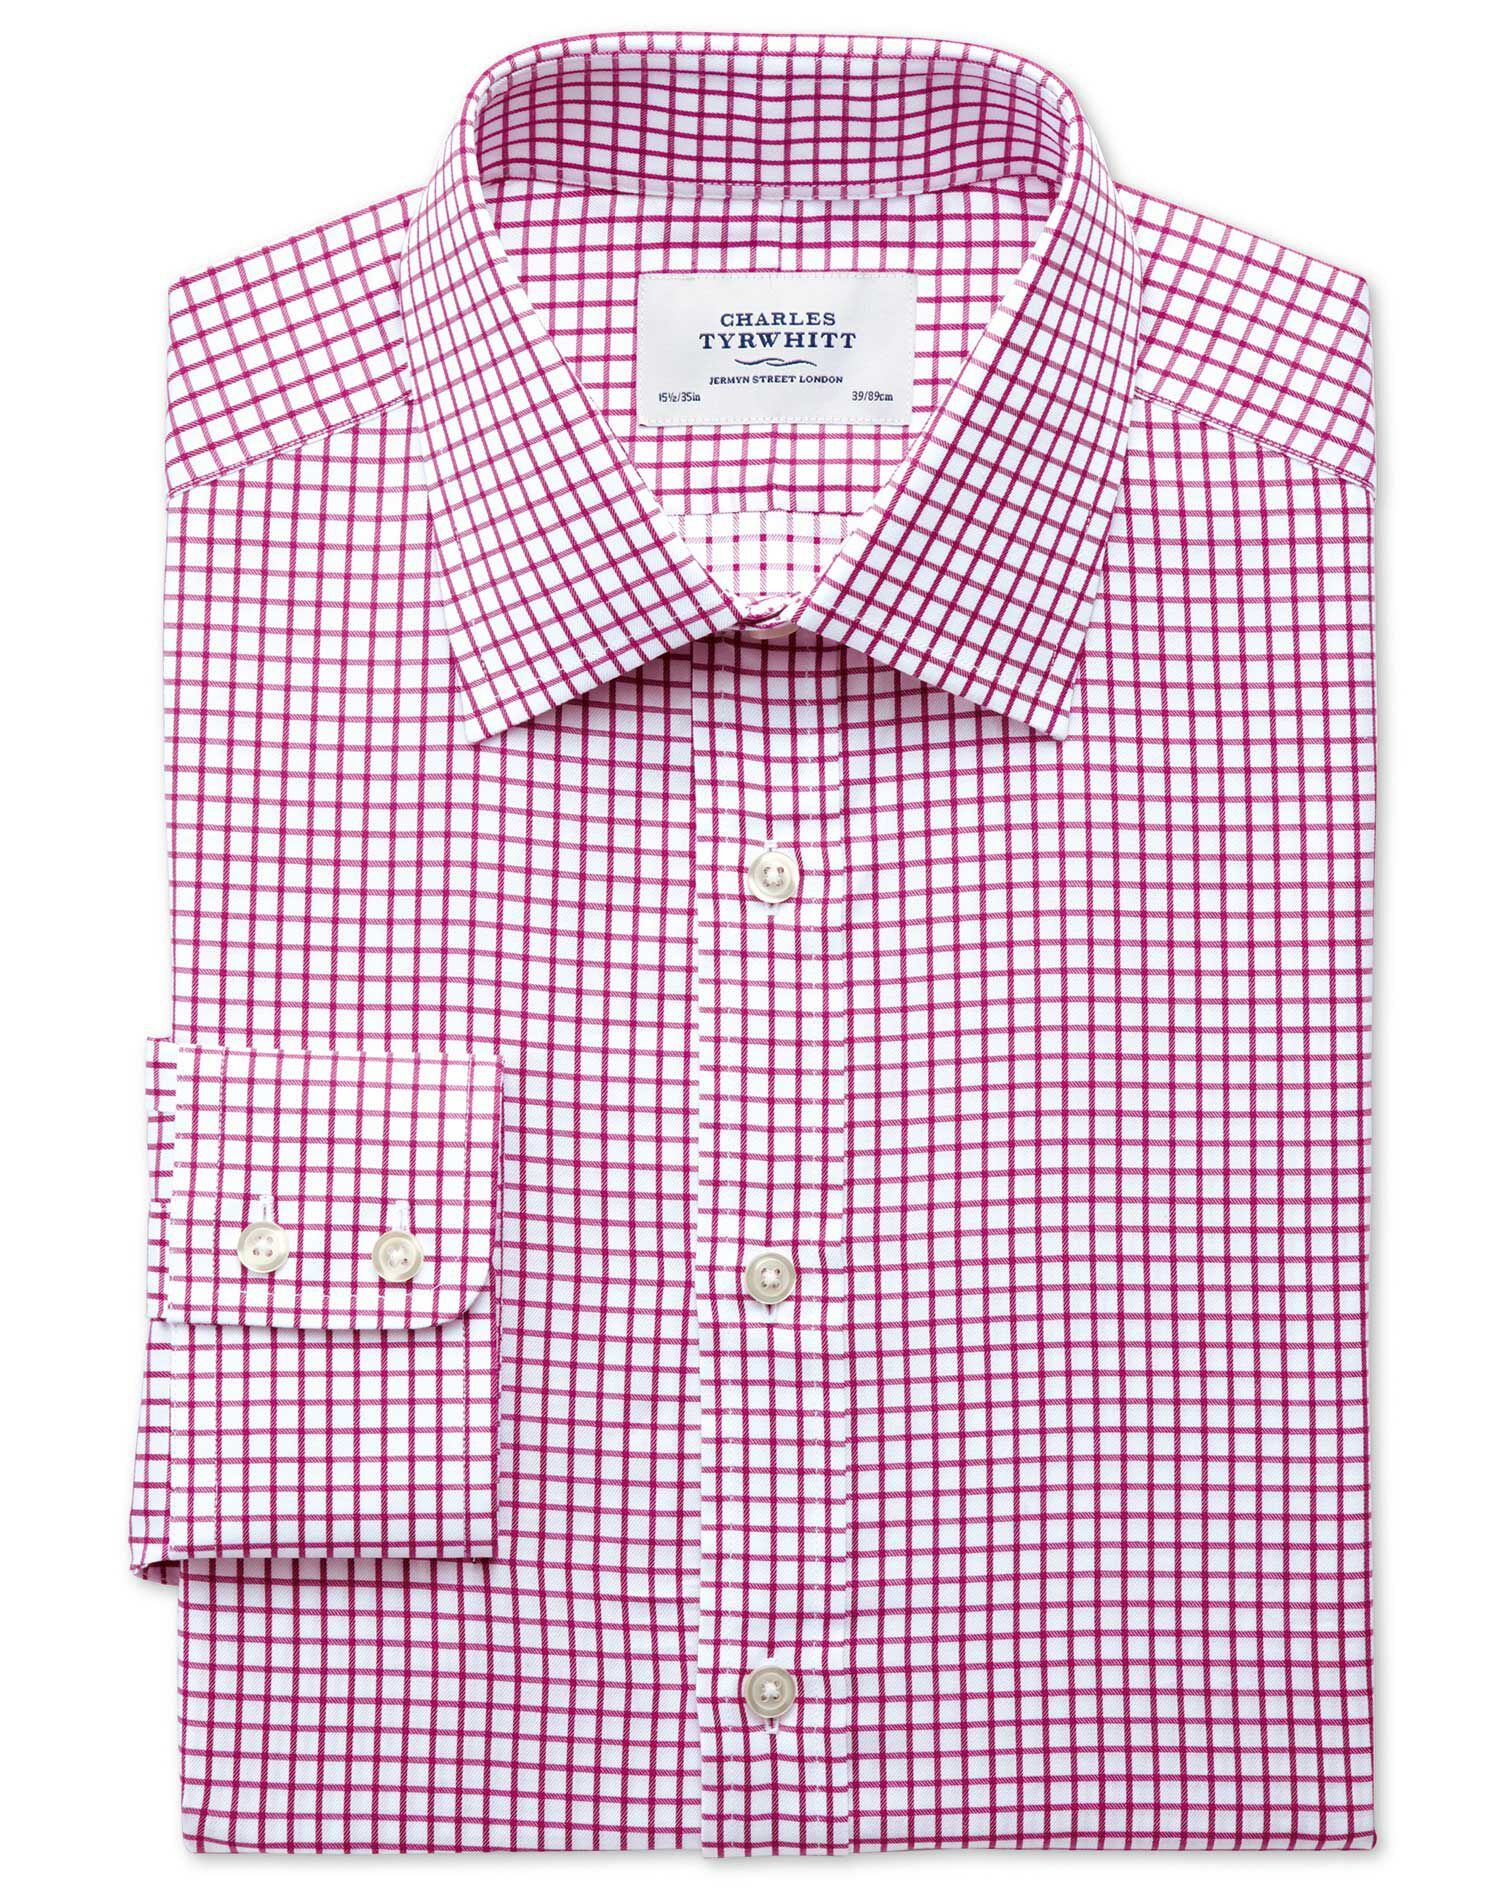 Extra Slim Fit Twill Grid Check Fuchsia Cotton Formal Shirt Single Cuff Size 17/34 by Charles Tyrwhi